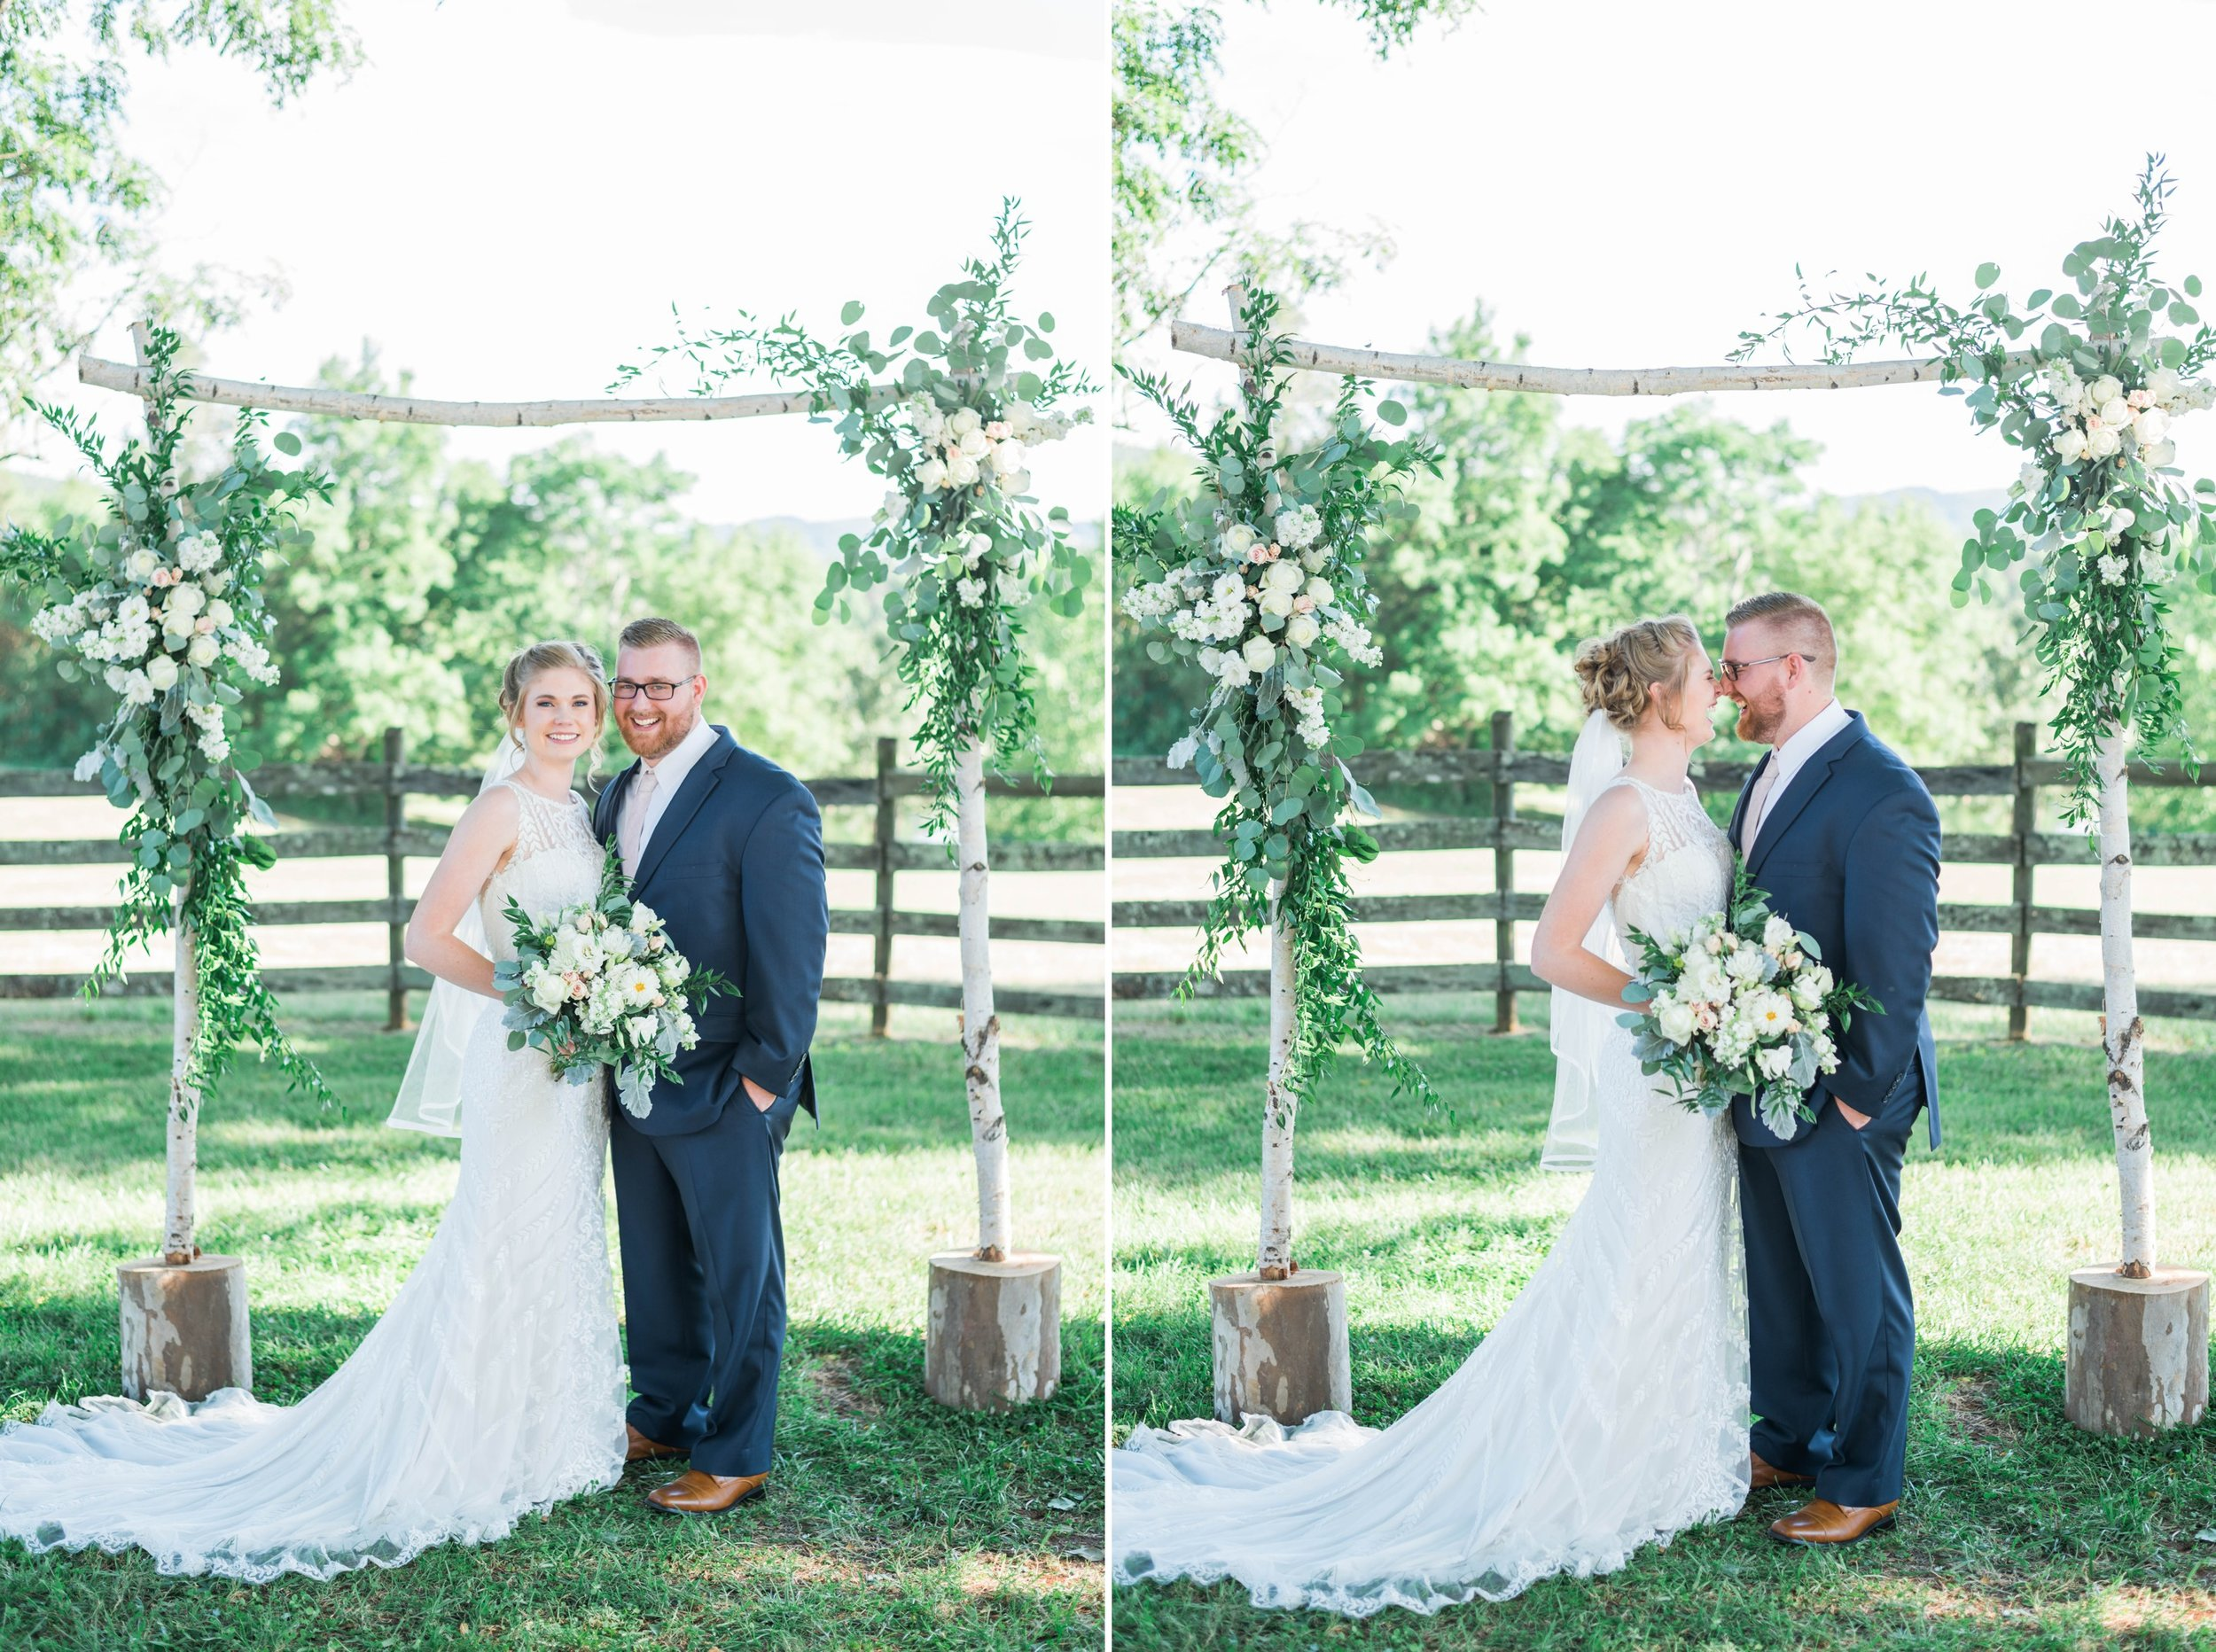 SorellaFarms_VirginiaWeddingPhotographer_BarnWedding_Lynchburgweddingphotographer_DanielleTyler 9.jpg